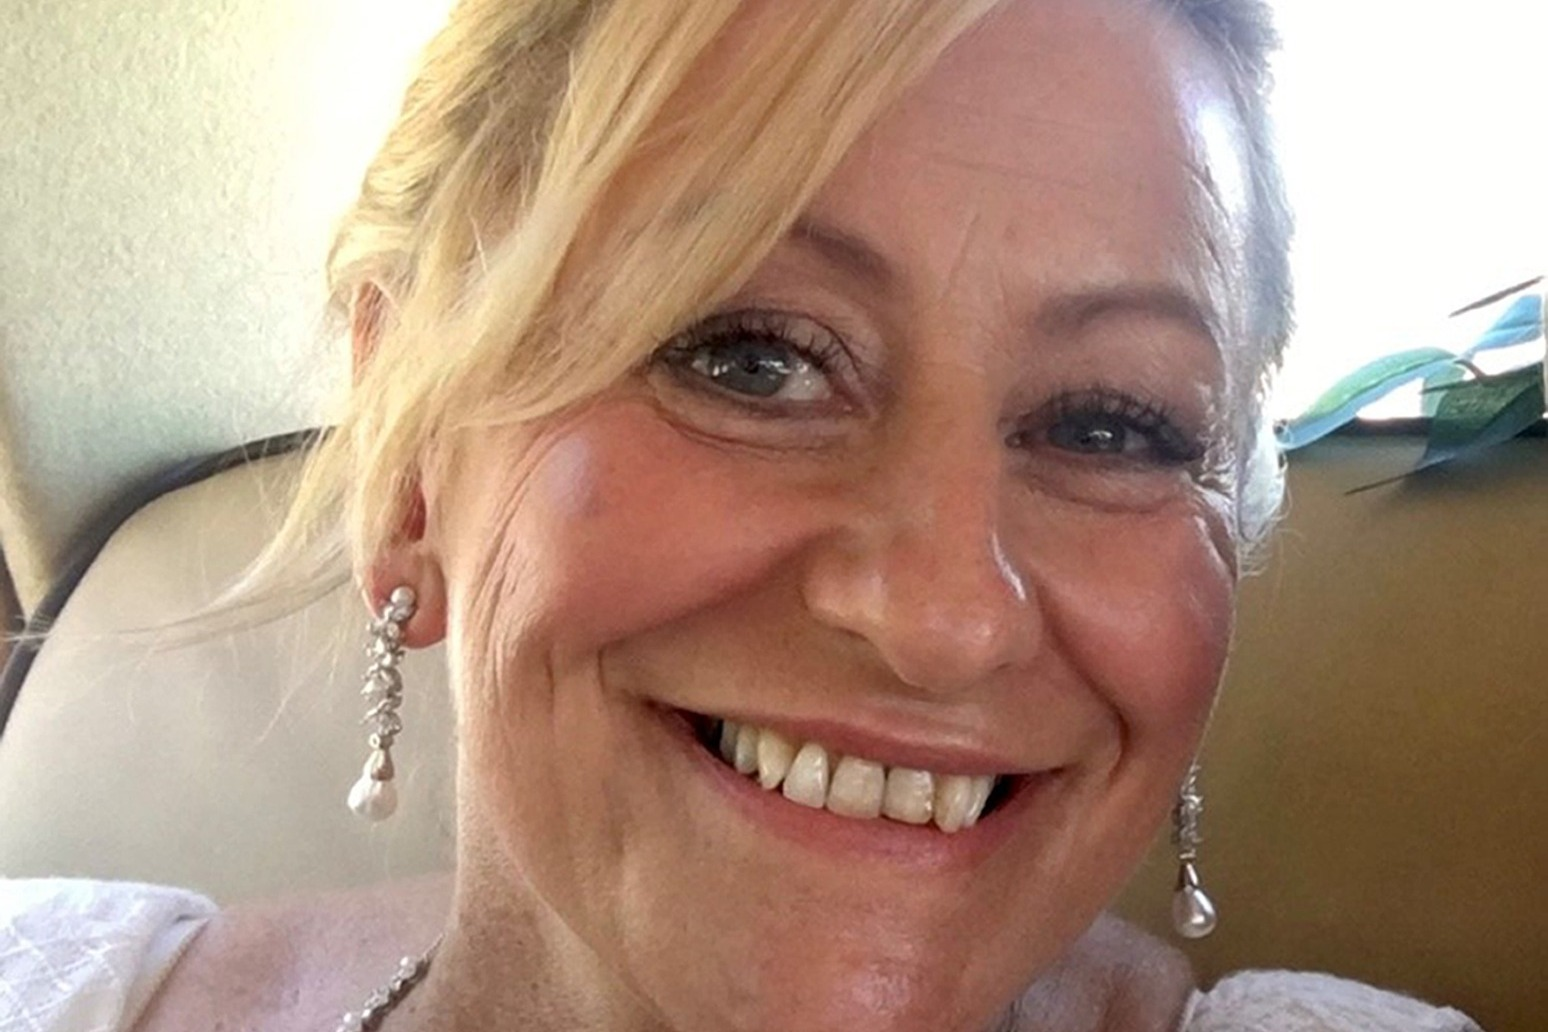 Police given more time to question man arrested in Julia James murder probe